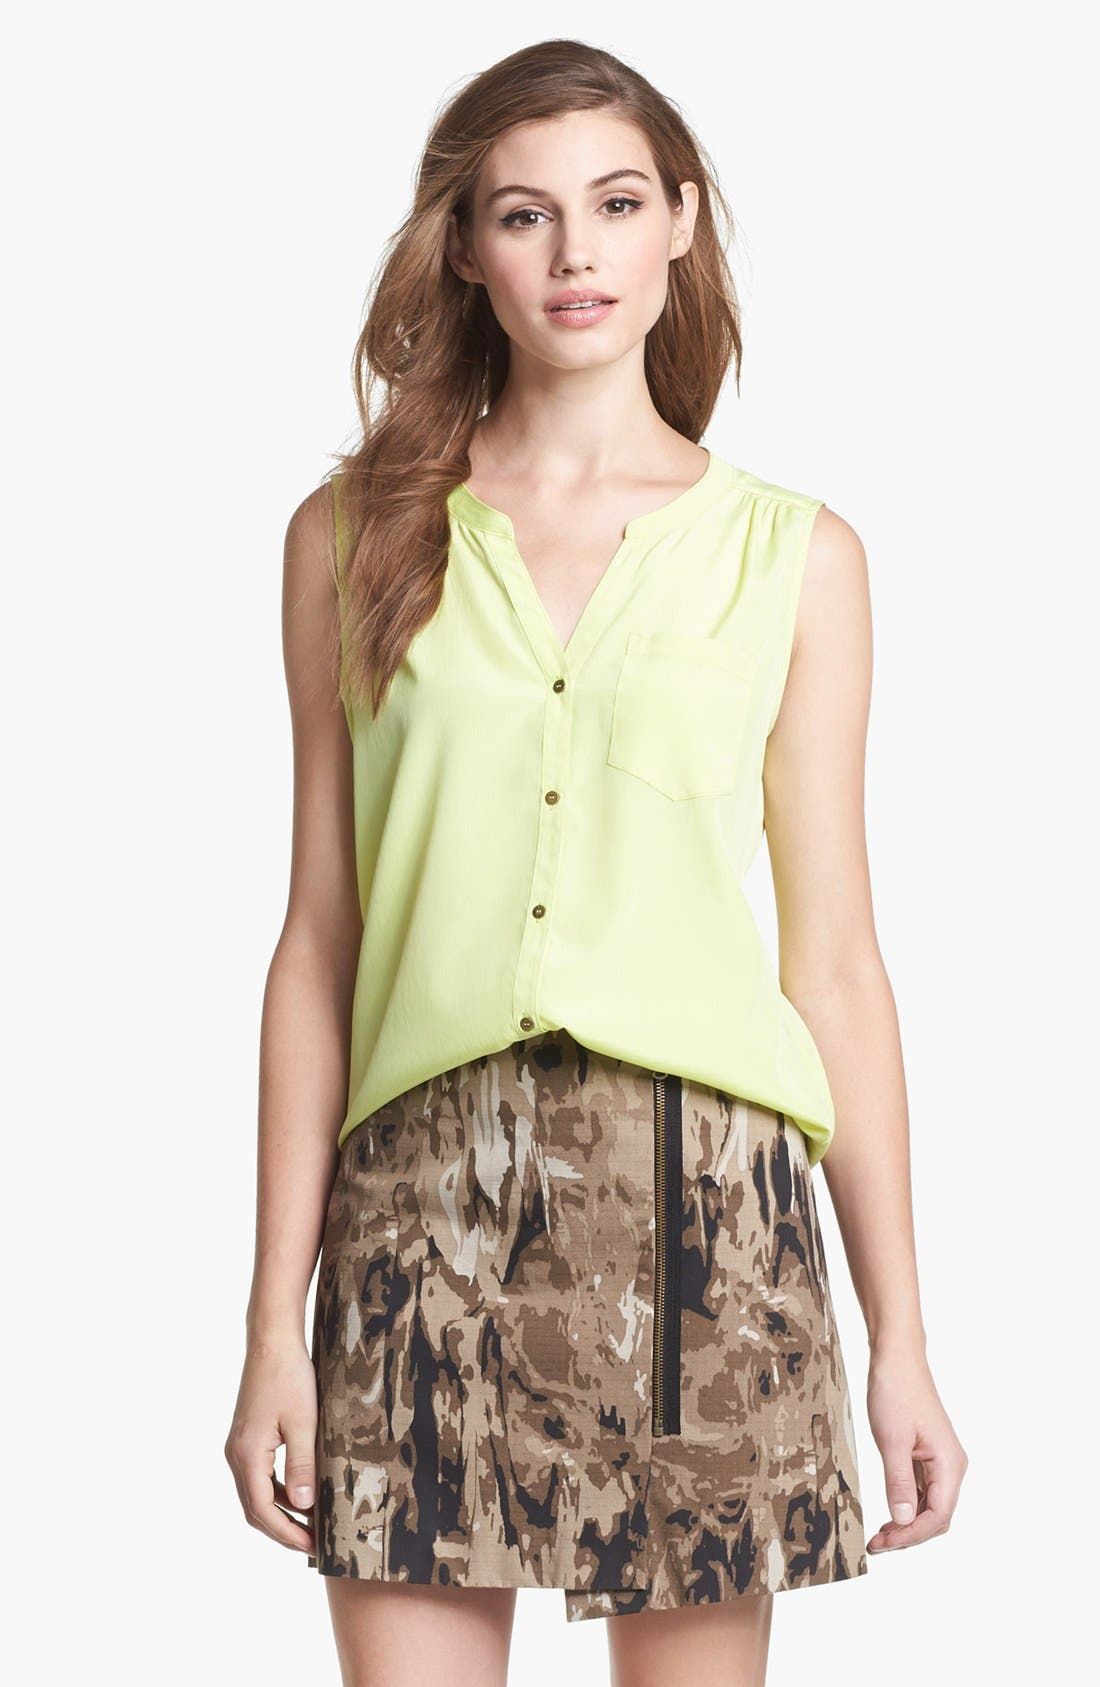 Alternate Image 1 Selected - Kenneth Cole New York 'Jolie' Sleeveless Blouse